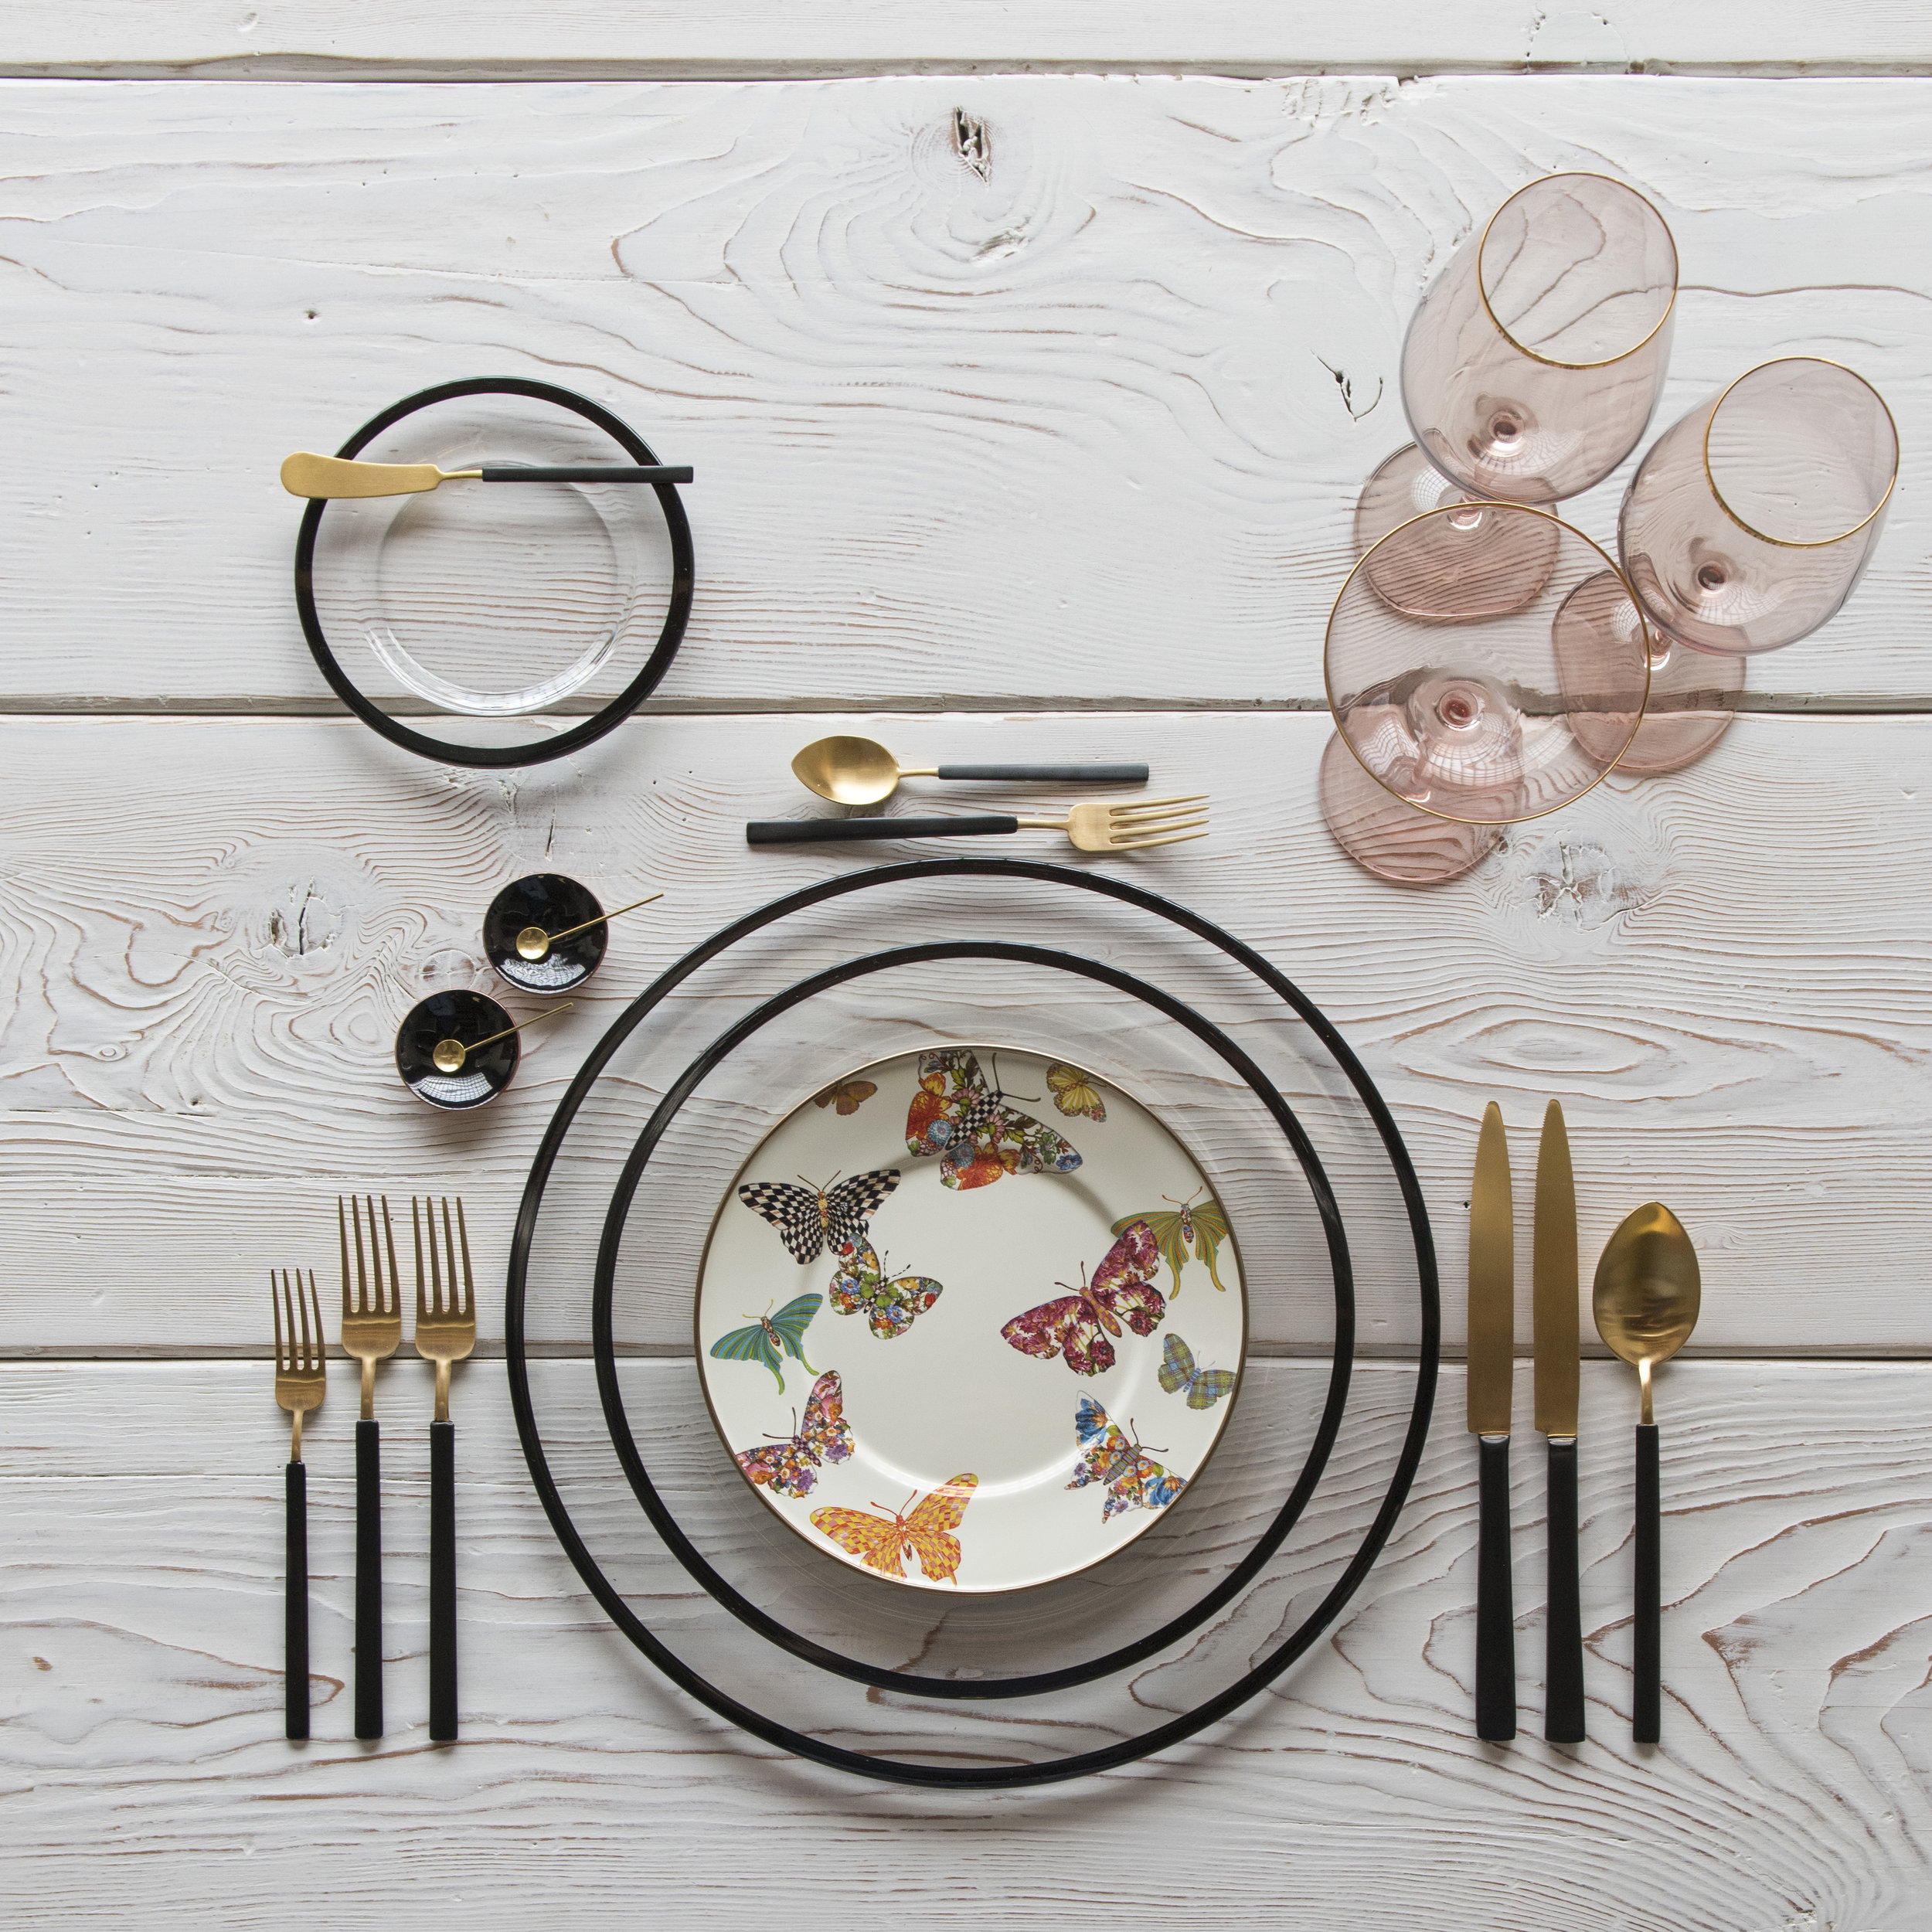 RENT: Halo Glass Chargers/Dinnerware in Black + MacKenzie-Childs Butterfly Garden Collection + Axel Flatware in Matte 24k Gold/Black + Bella 24k Gold Rimmed Stemlware in Blush + Black Enamel Salt Cellars + Tiny Gold Spoons  SHOP: Halo Glass Chargers/Dinnerware in Black + Bella 24k Gold Rimmed Stemware in Blush + Black Enamel Salt Cellars + Tiny Gold Spoons